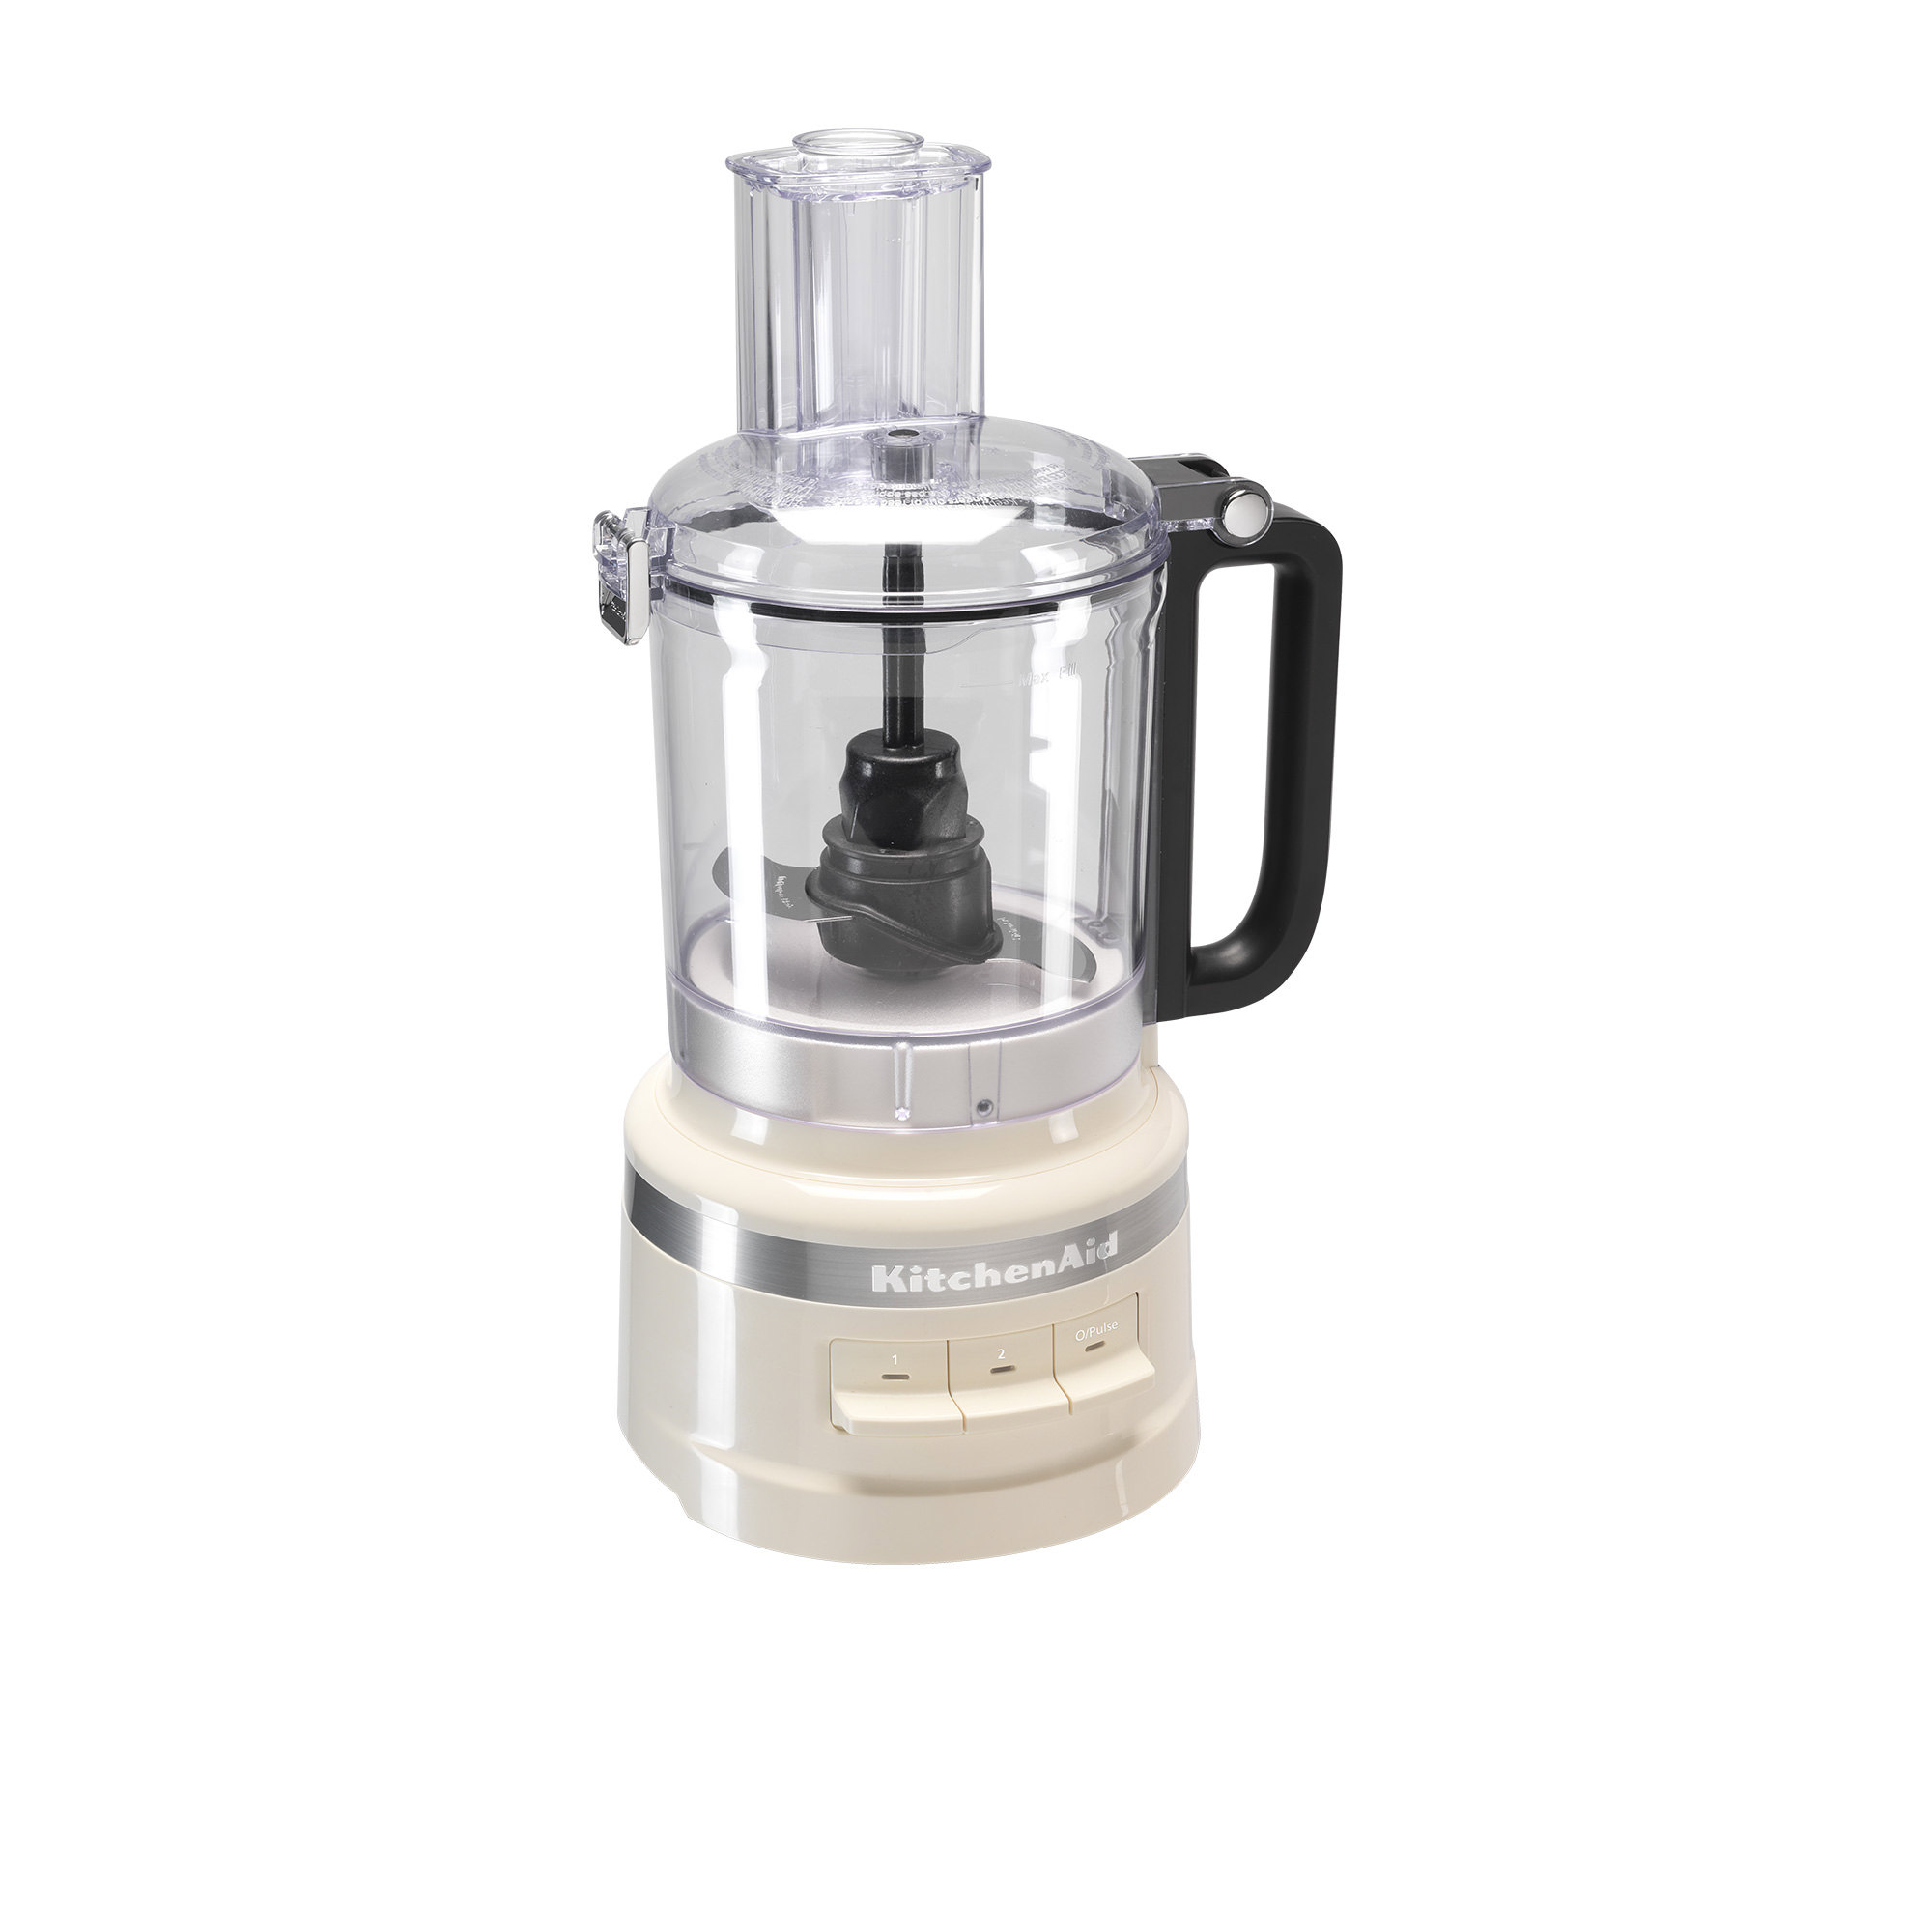 KitchenAid 9 Cup Food Processor Almond Cream